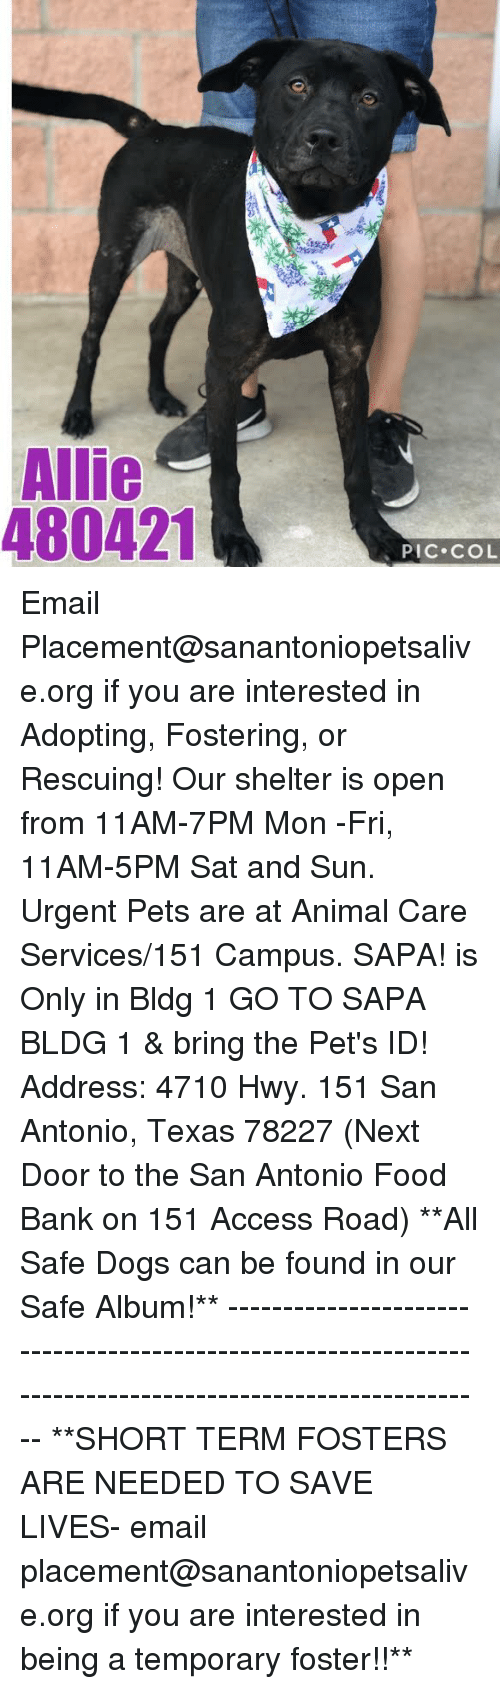 food bank: Allie  480421  PIC COL Email Placement@sanantoniopetsalive.org if you are interested in Adopting, Fostering, or Rescuing!  Our shelter is open from 11AM-7PM Mon -Fri, 11AM-5PM Sat and Sun.  Urgent Pets are at Animal Care Services/151 Campus. SAPA! is Only in Bldg 1 GO TO SAPA BLDG 1 & bring the Pet's ID! Address: 4710 Hwy. 151 San Antonio, Texas 78227 (Next Door to the San Antonio Food Bank on 151 Access Road)  **All Safe Dogs can be found in our Safe Album!** ---------------------------------------------------------------------------------------------------------- **SHORT TERM FOSTERS ARE NEEDED TO SAVE LIVES- email placement@sanantoniopetsalive.org if you are interested in being a temporary foster!!**